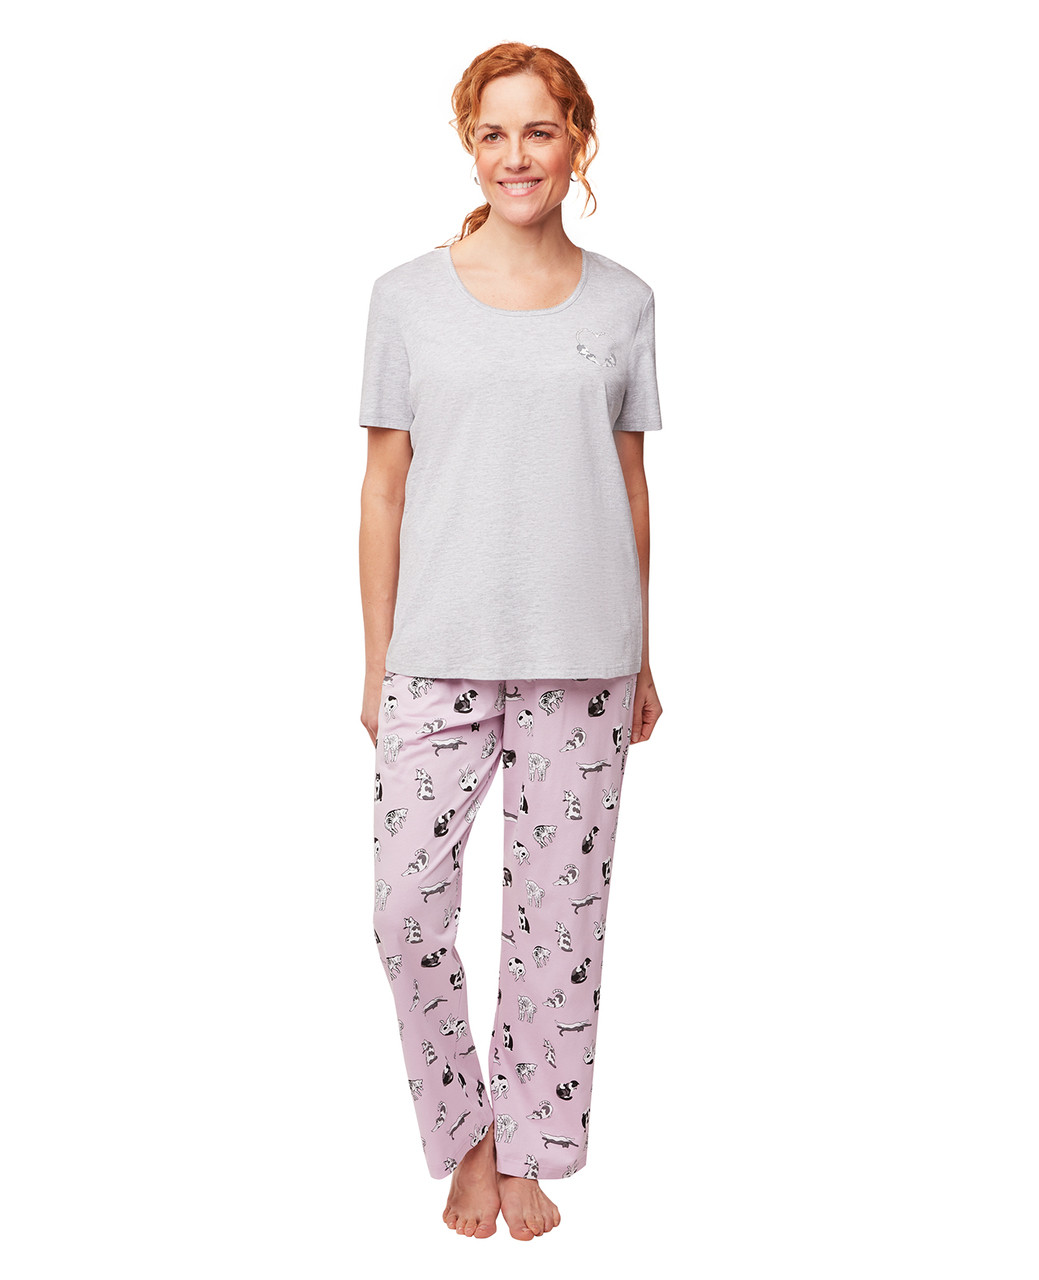 baf89c65f55 Women s Grey Cat Print Pajama Set